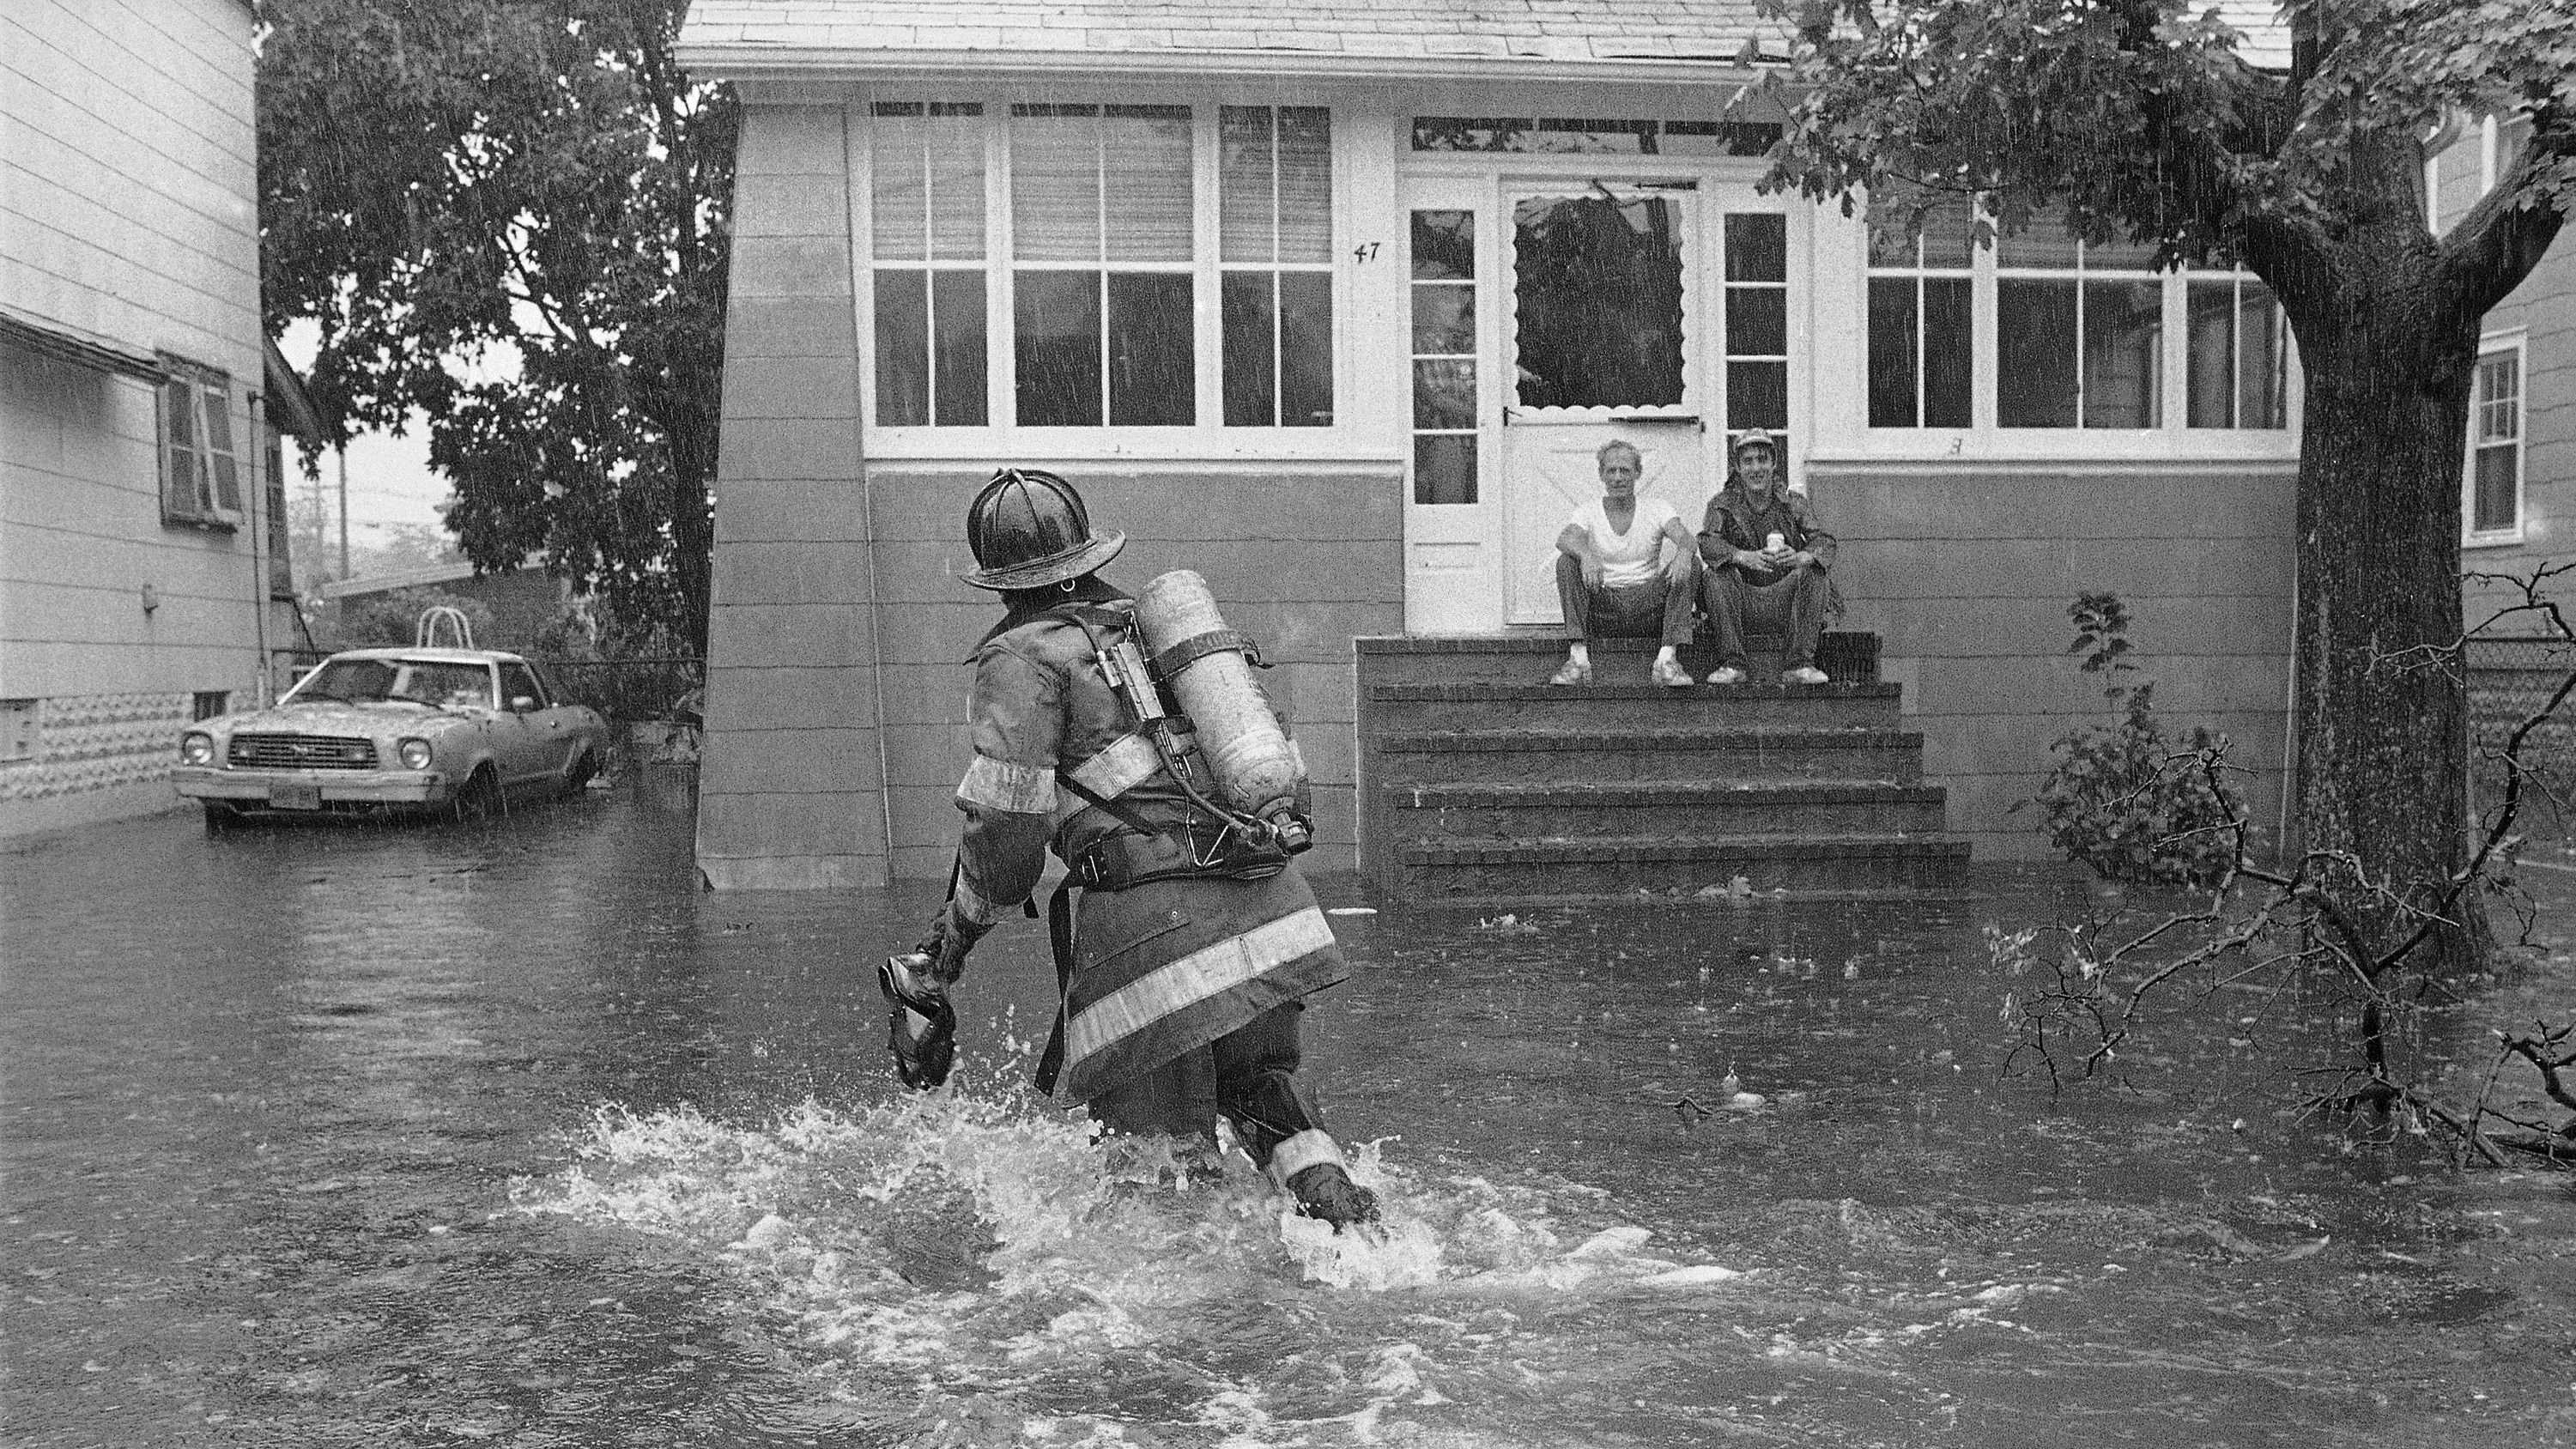 A firefighter makes his way through knee-deep water as he checks flooding conditions on Gordon Place in Freeport, New York, Sept. 27, 1985. Howling winds and heavy rain from Hurricane Gloria flooded local streets as the storm passed over the Long Island community.